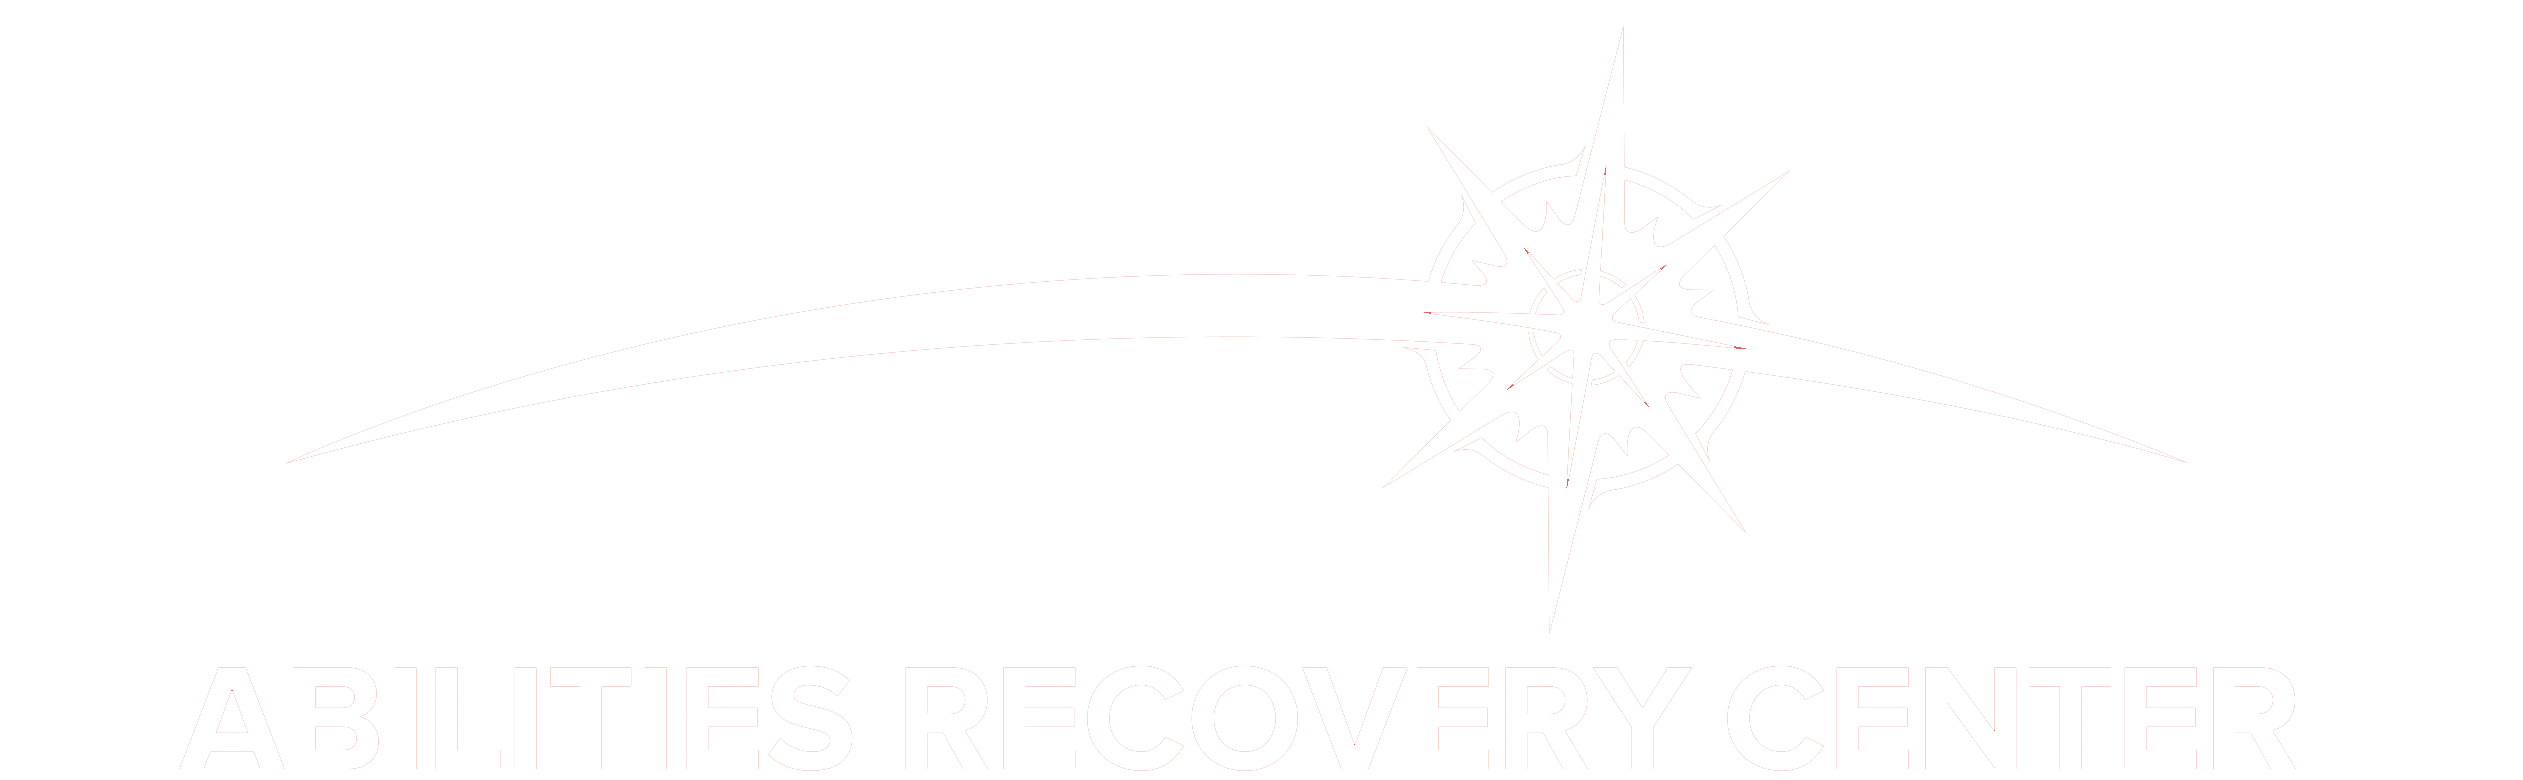 Abilities-Recovery-Center_Logo-4-1